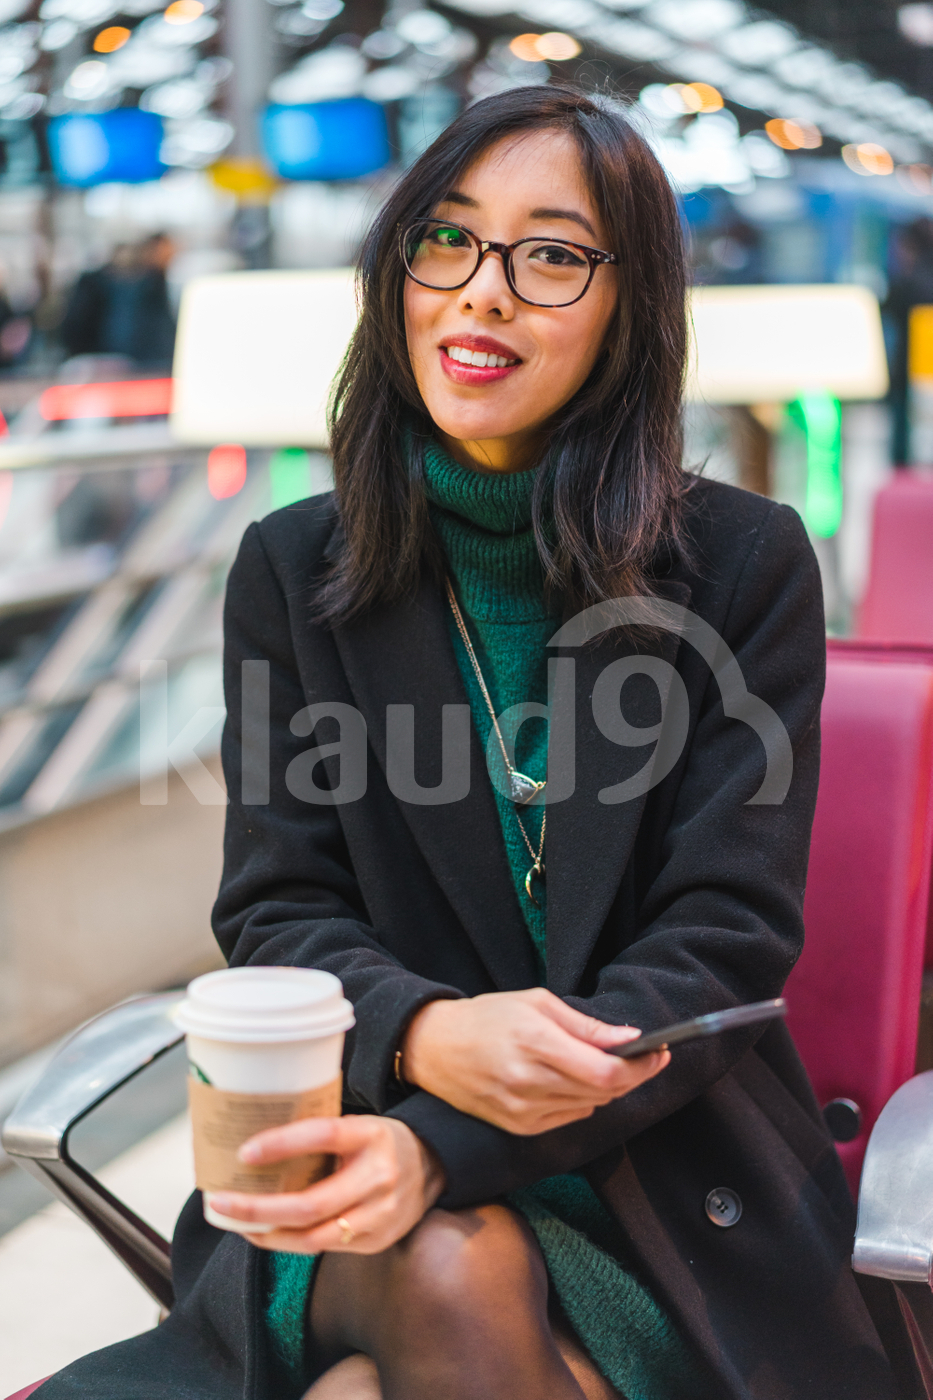 Young woman sitting in a train station holding a coffee cup